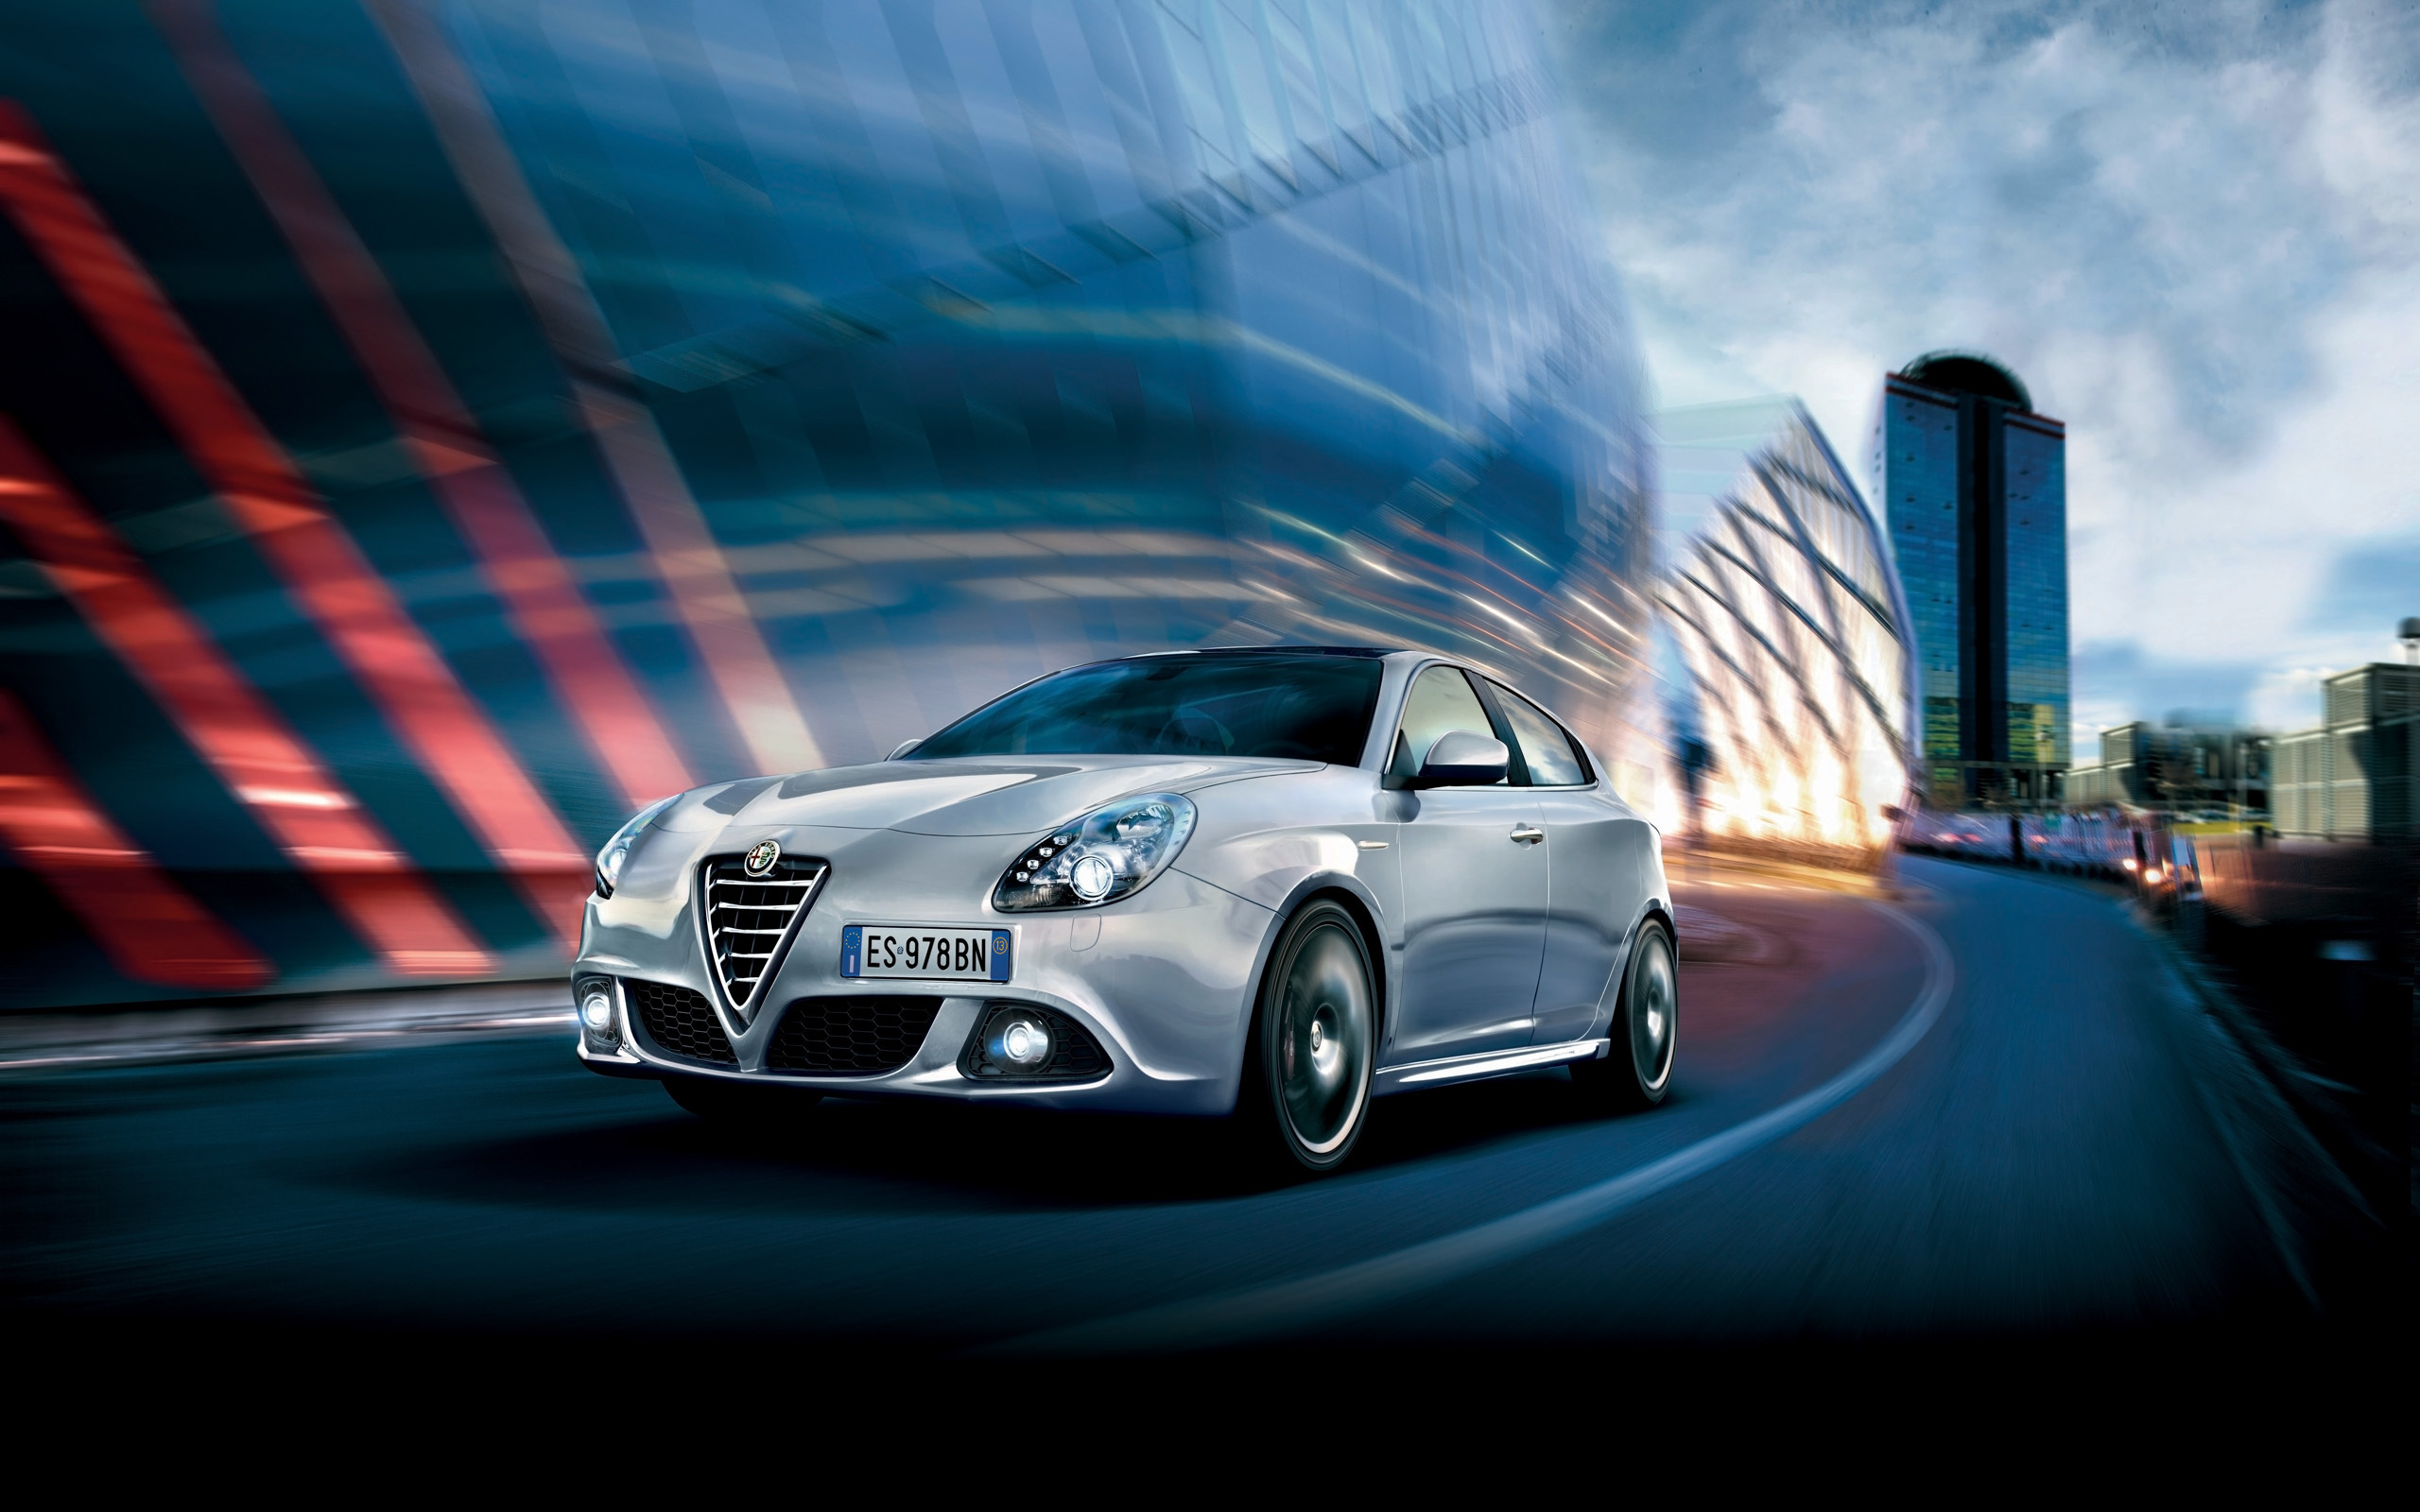 2014 alfa romeo giulietta wallpaper hd car wallpapers. Black Bedroom Furniture Sets. Home Design Ideas